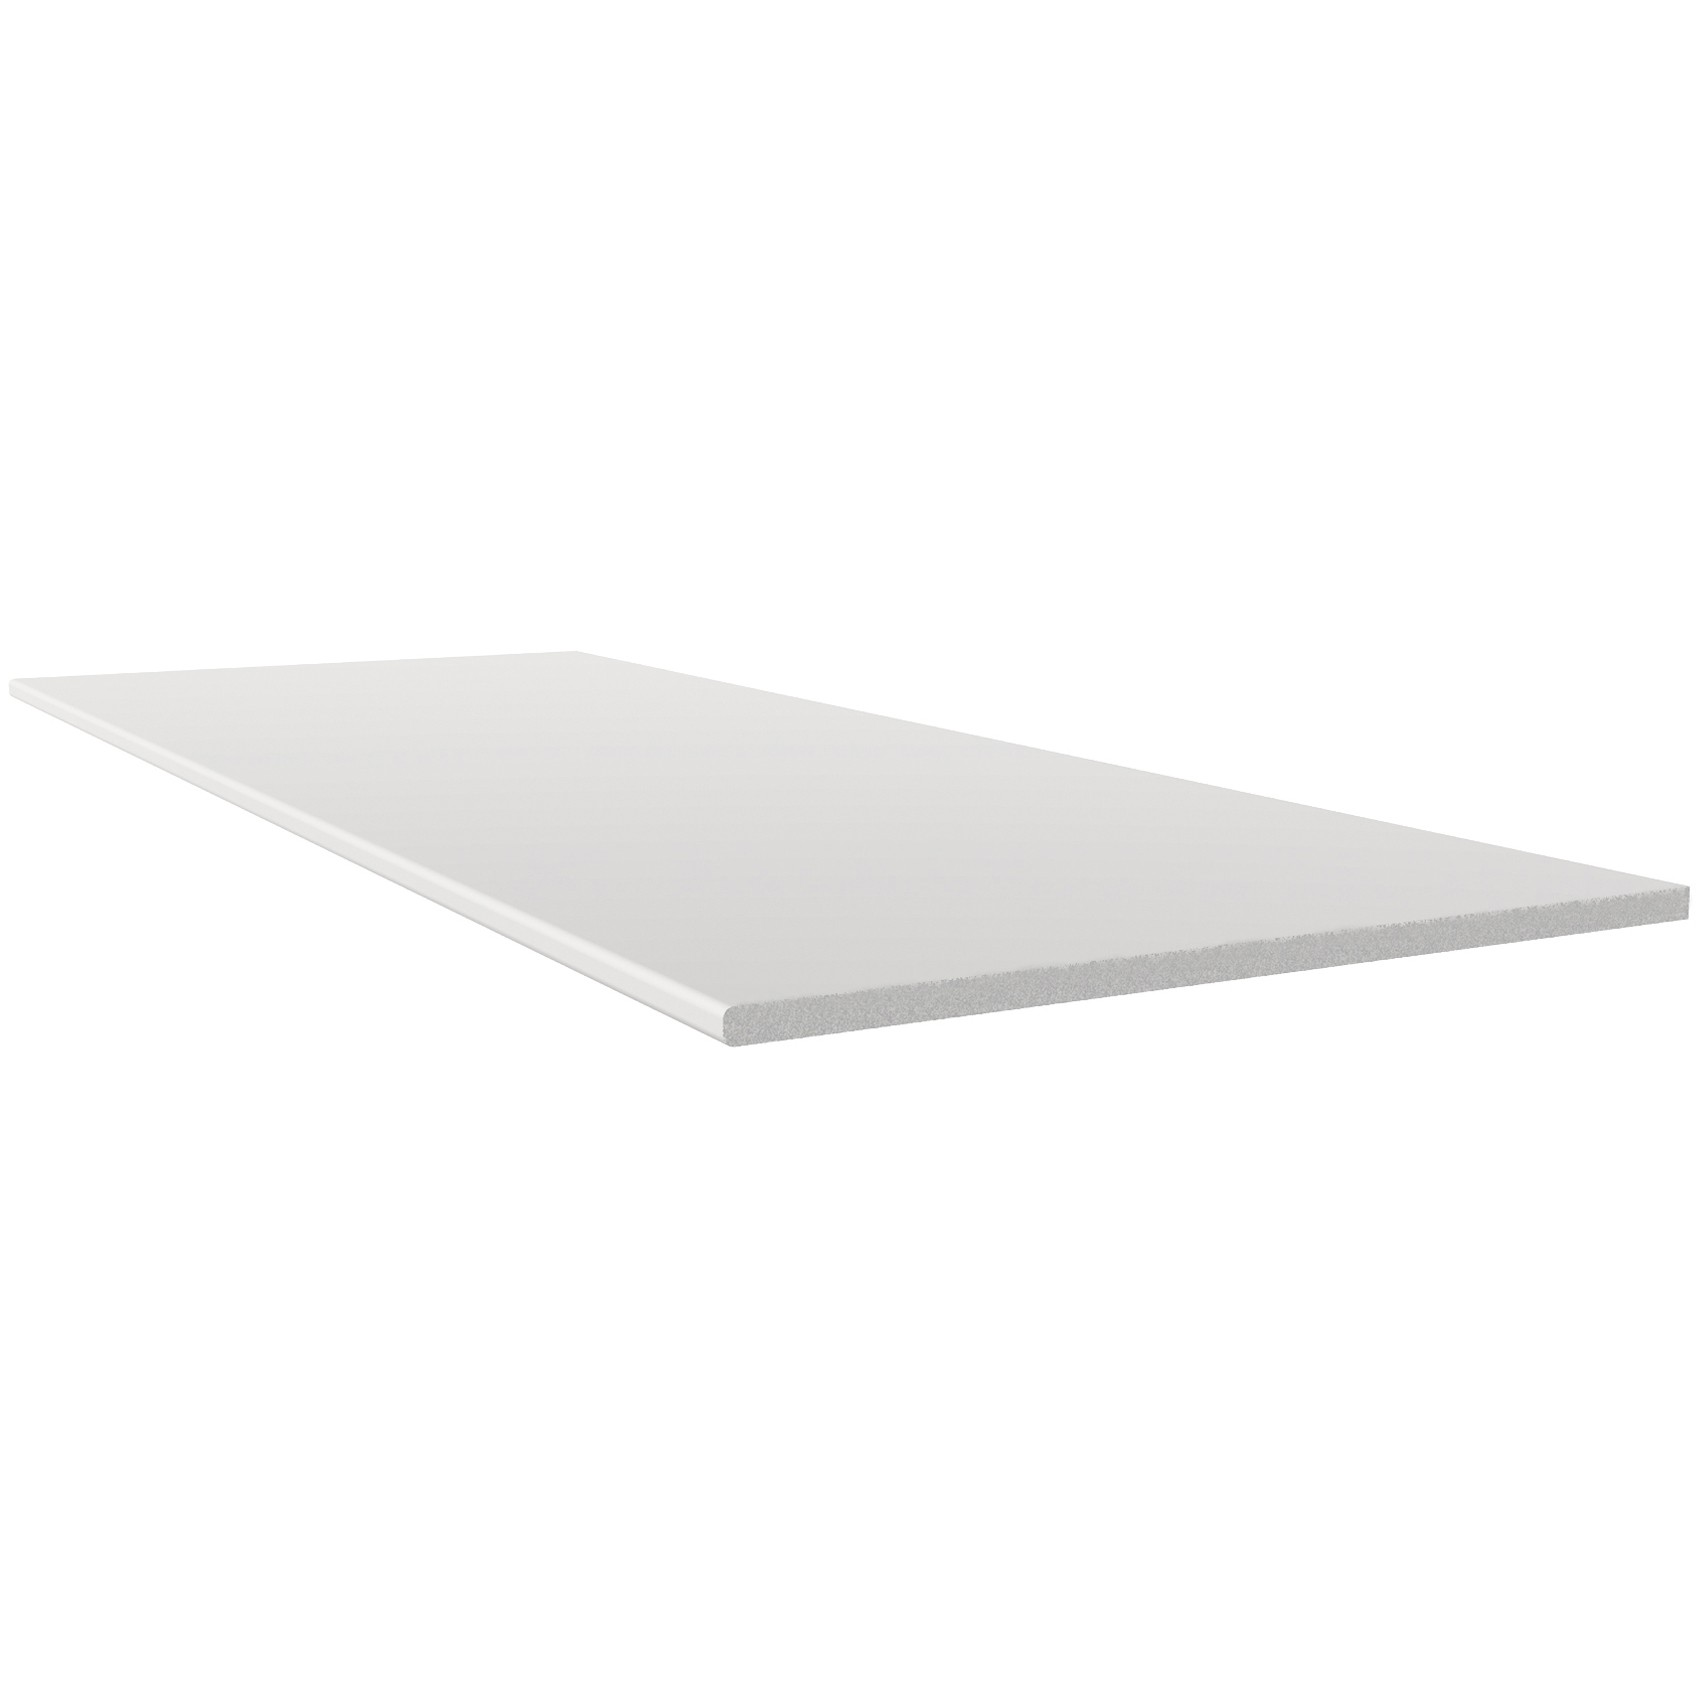 Freefoam 10mm Solid Soffit Board - White, 225mm, 2.5 metre